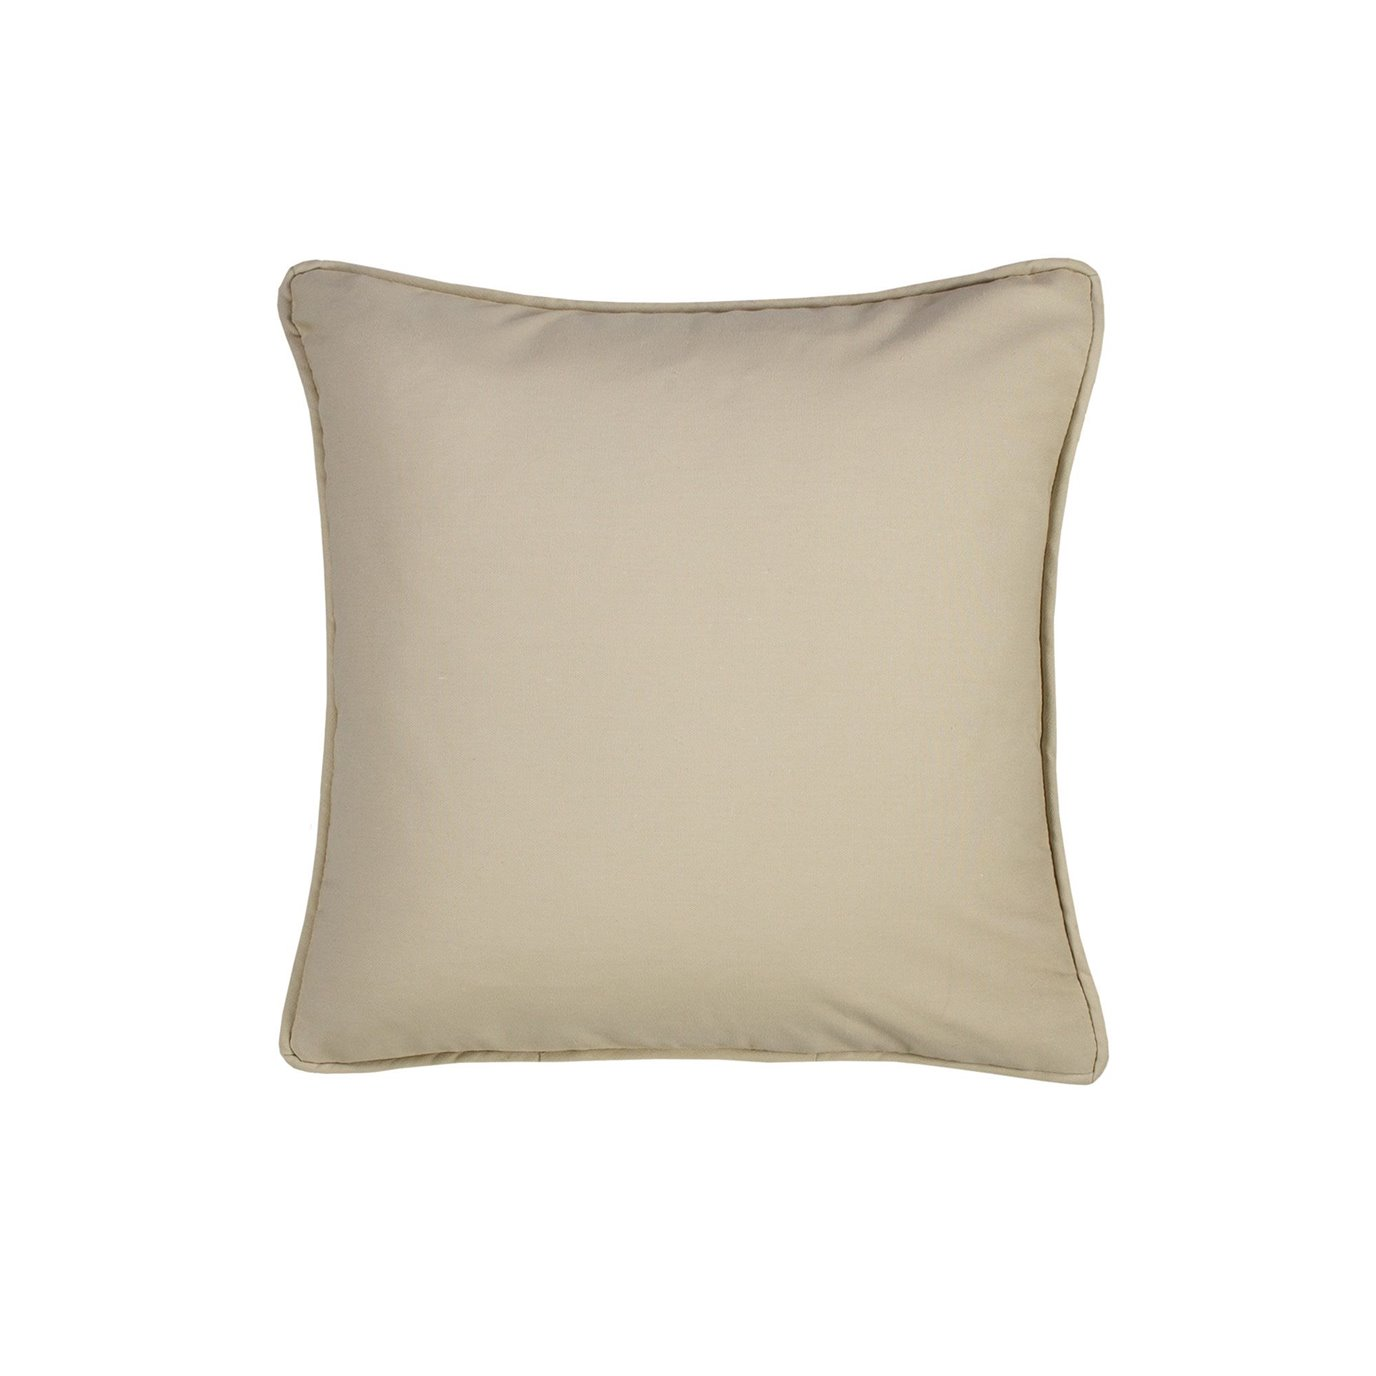 On Course Solid Tan Square Pillow